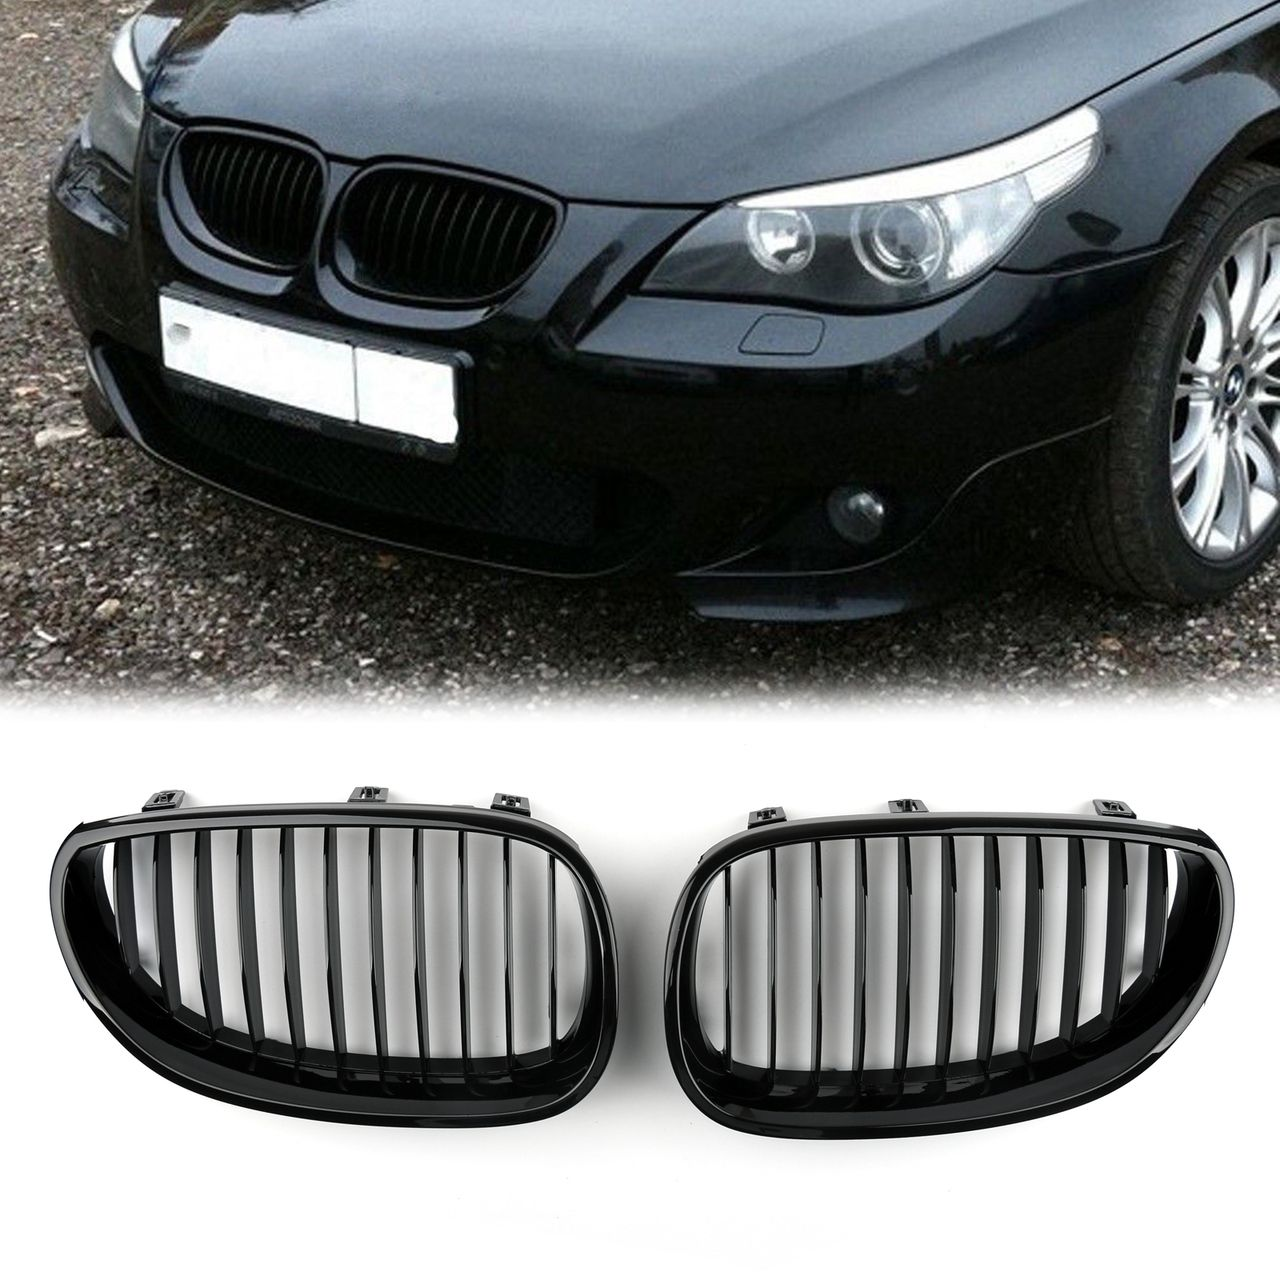 Mad Hornets Kidney Grille Bmw E60 E61 5 Series 2003 2010 Gloss